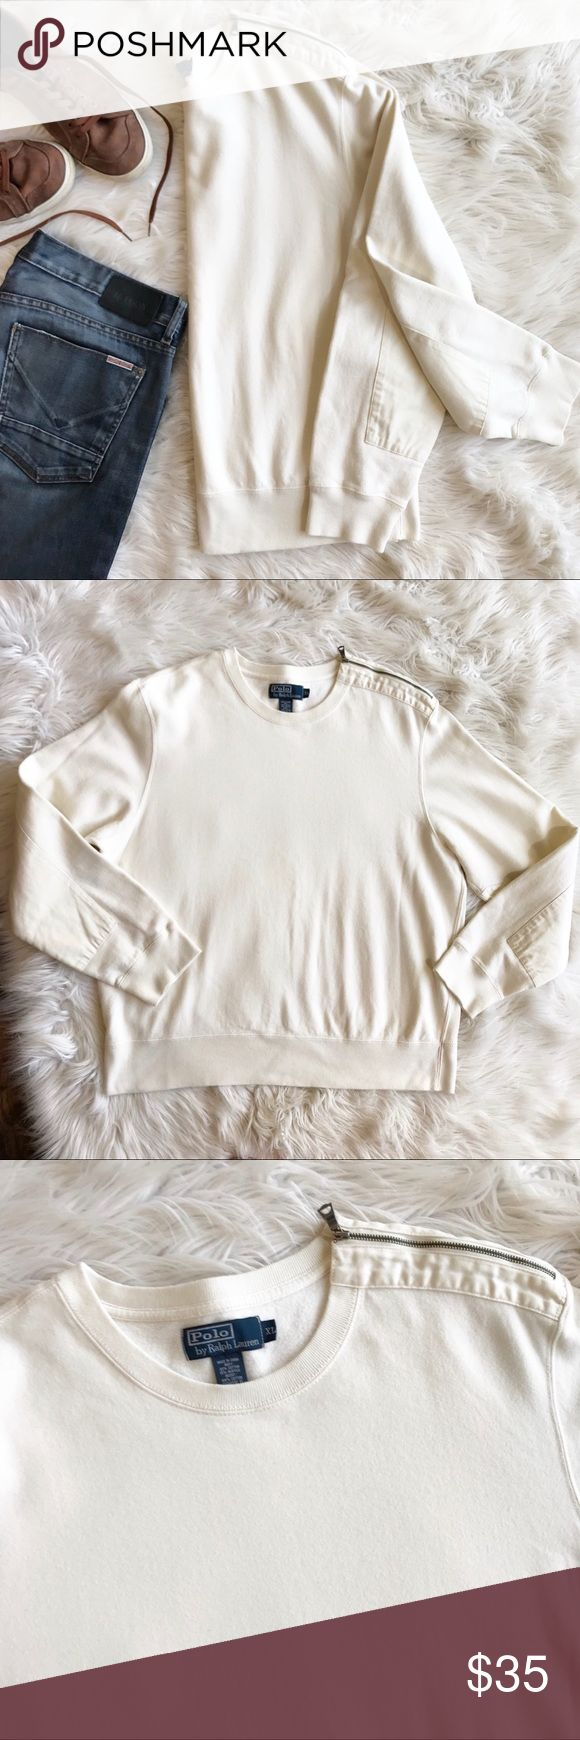 Polo Ralph Lauren sweatshirt with Shoulder Zipper Excellent condition Pullover sweaterhsirt by Polo Ralph Lauren. Cream colored with shoulder zipper on one side and patches at elbows. Size XL.  Body: 85% cotton, 15% acrylic  Insert: 100% cotton Polo by Ralph Lauren Sweaters Crewneck